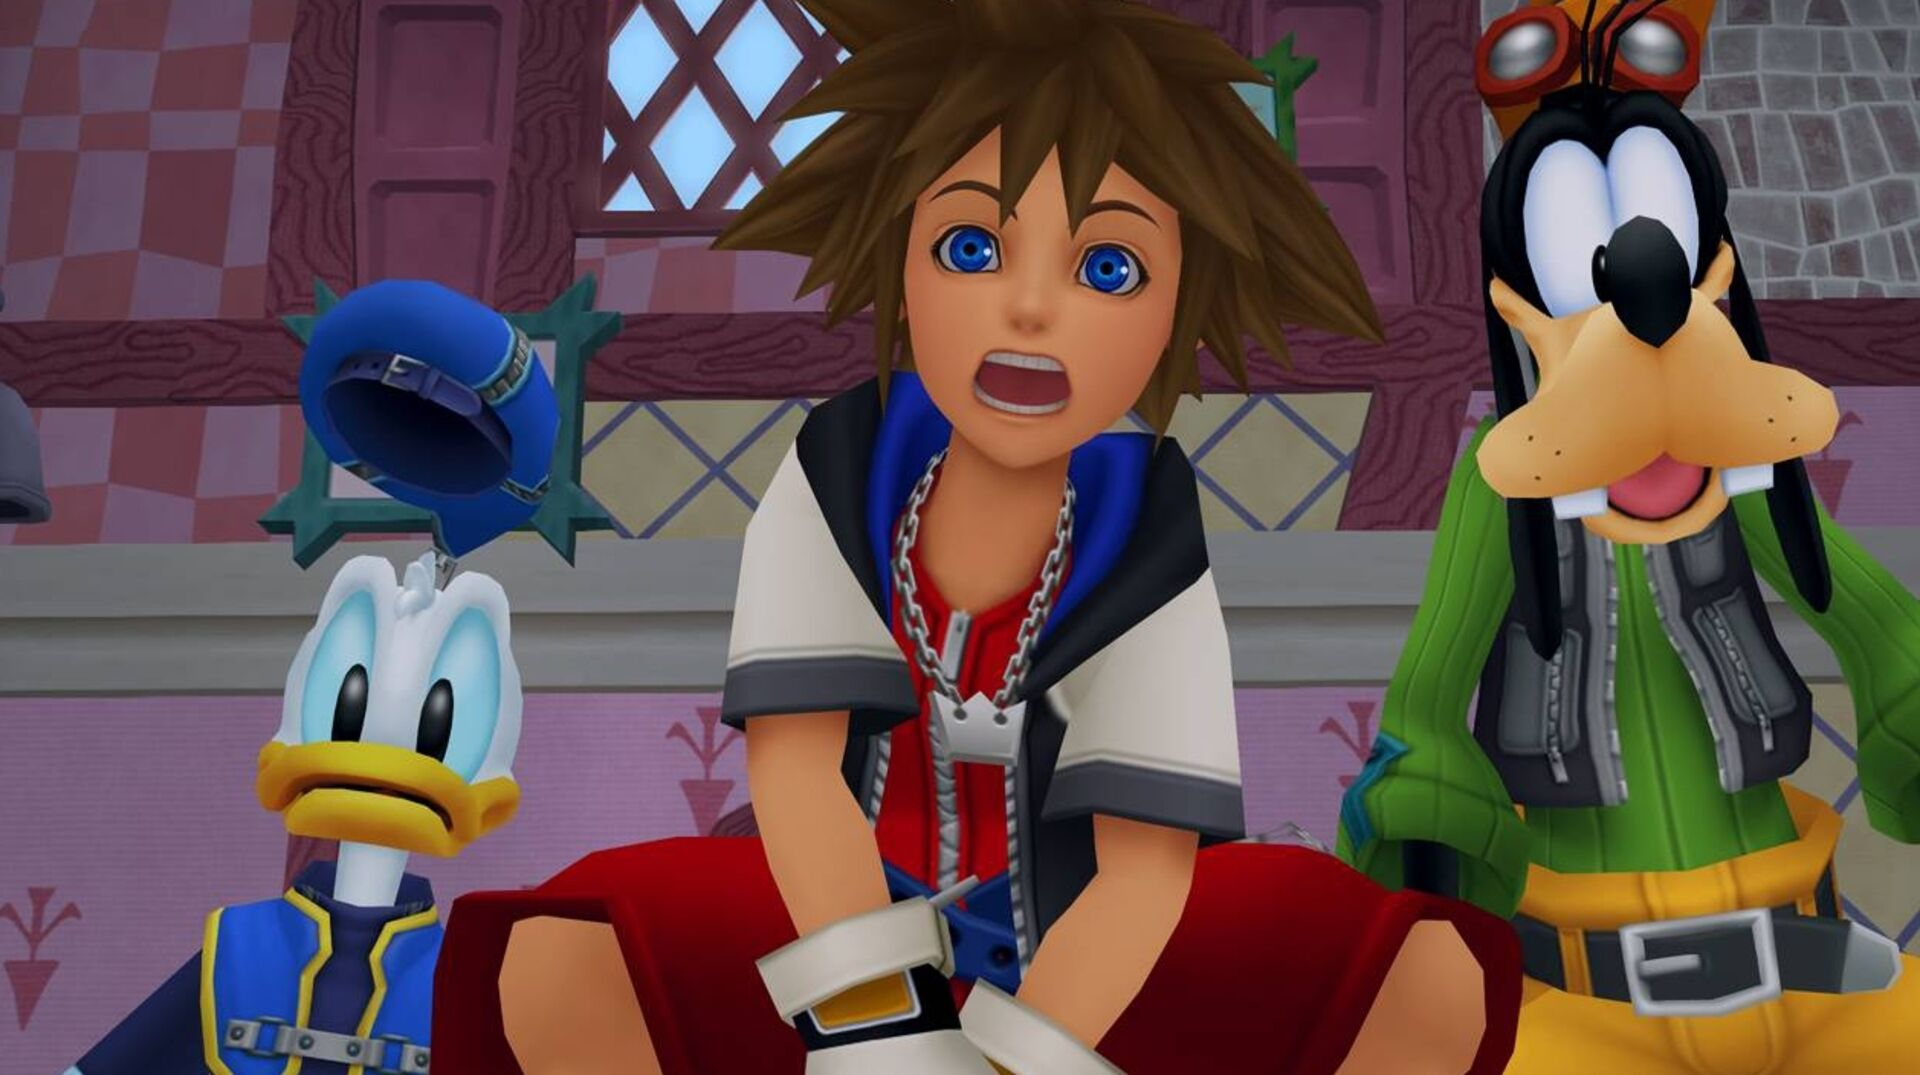 Kingdom Hearts: The Story So Far bundles up (almost) every game in